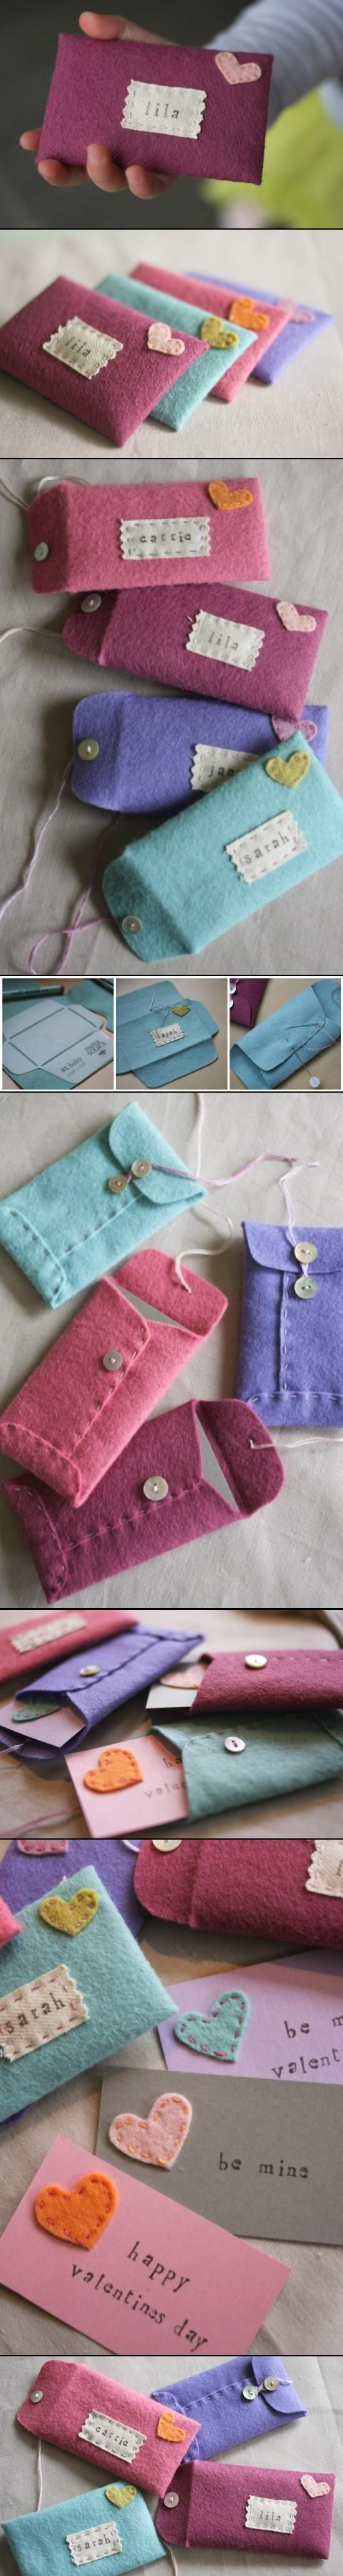 Embroidered Felt Envelopes - Embroidery Embroider Felt Project DIY Envelope (scheduled via http://www.tailwindapp.com?utm_source=pinterest&utm_medium=twpin&utm_content=post79555501&utm_campaign=scheduler_attribution)